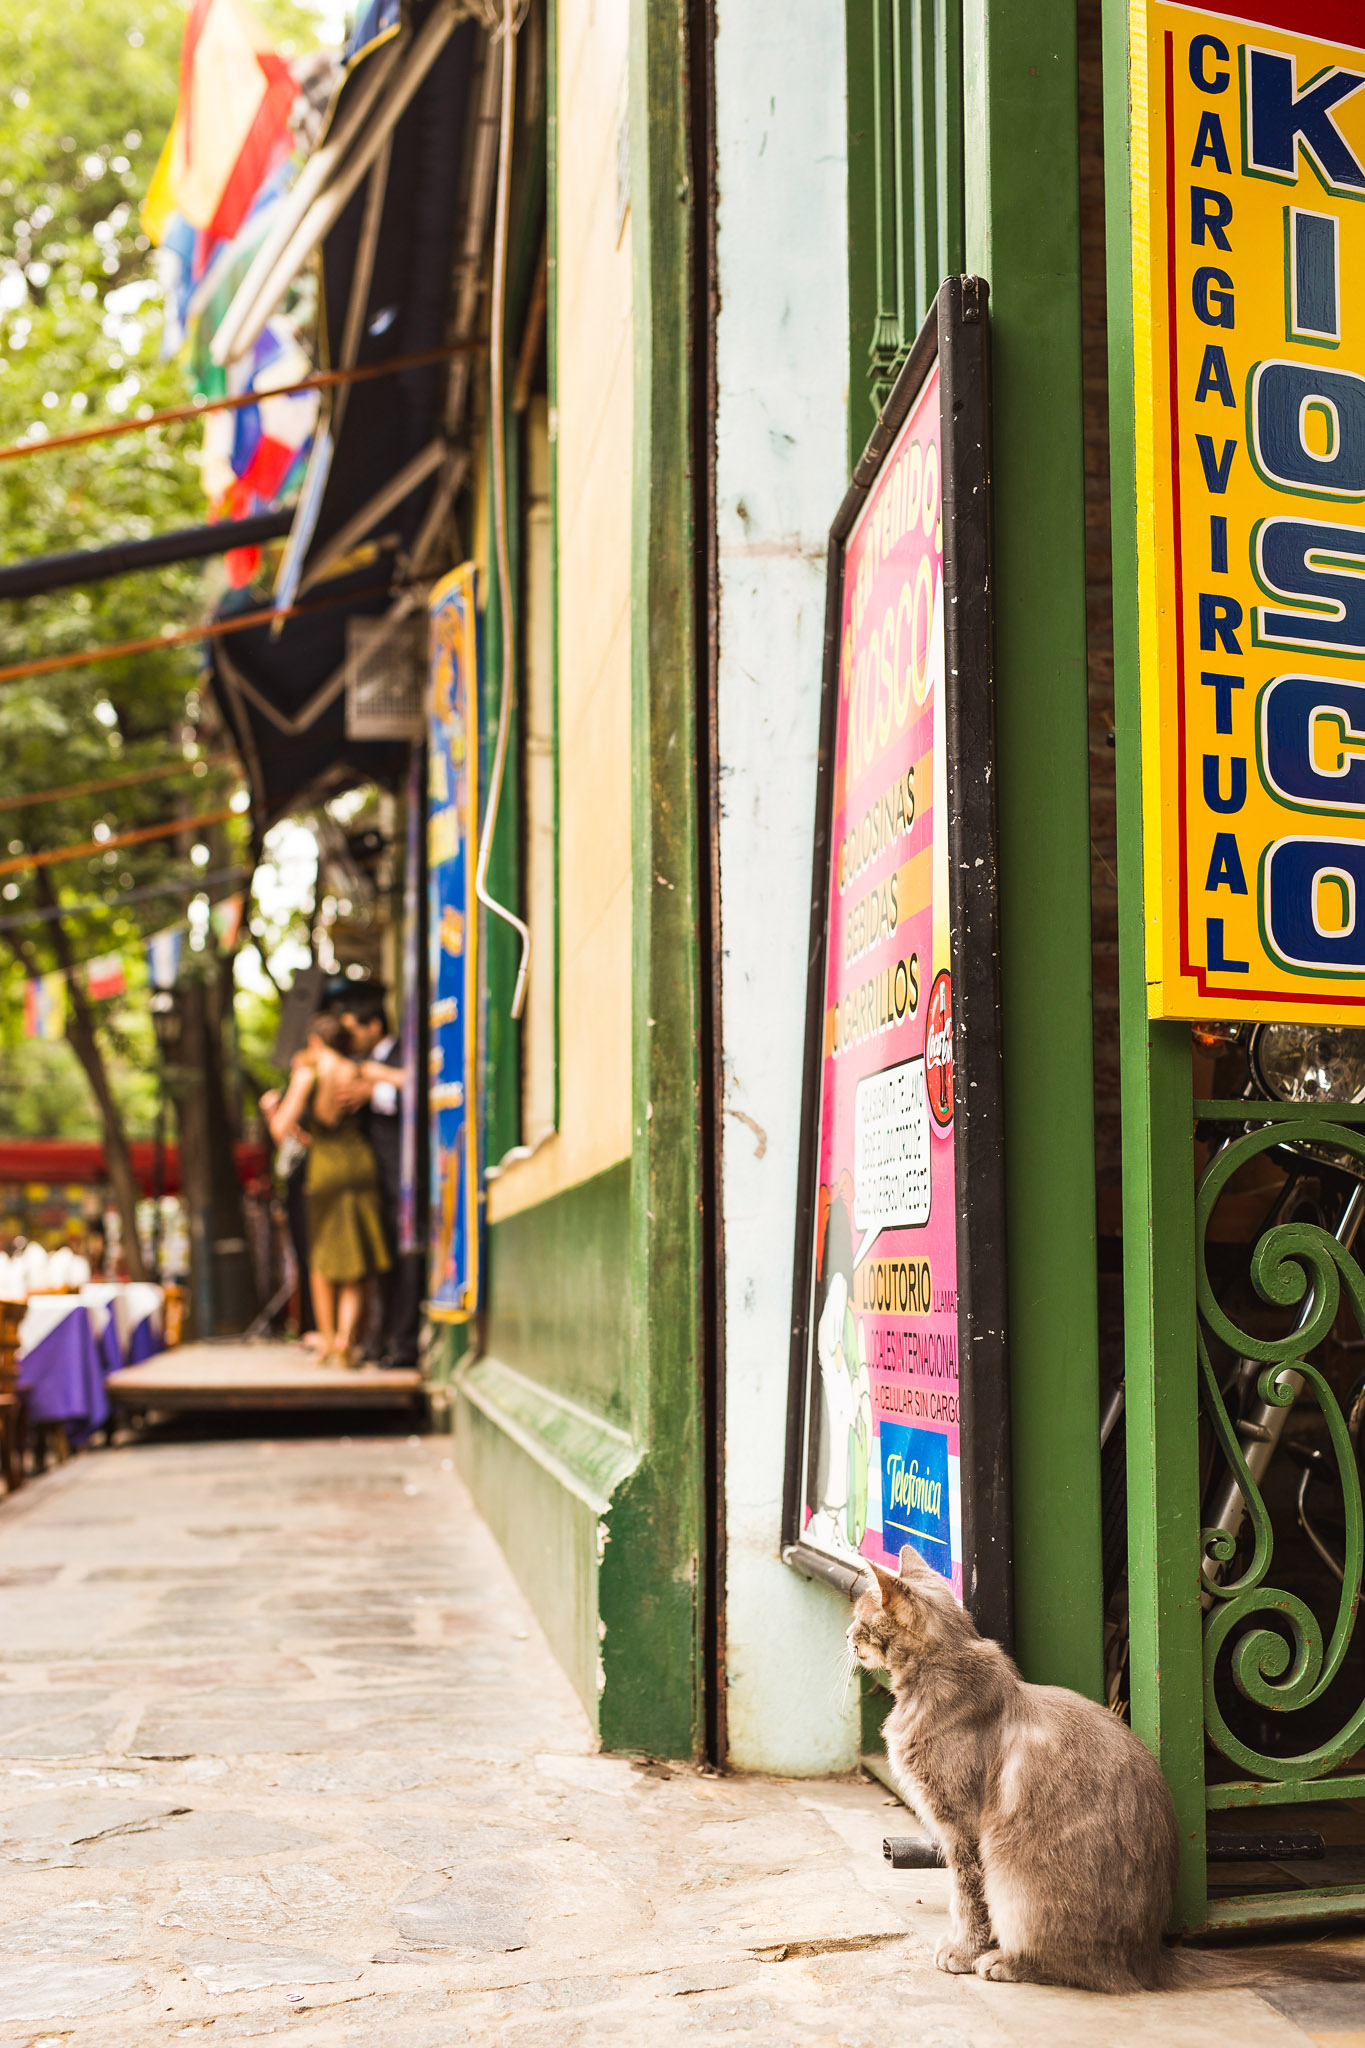 wedding-travellers-argentina-buenos-aires-la-boca-colorful-old-street-stray-cat-tango-dancer-watching